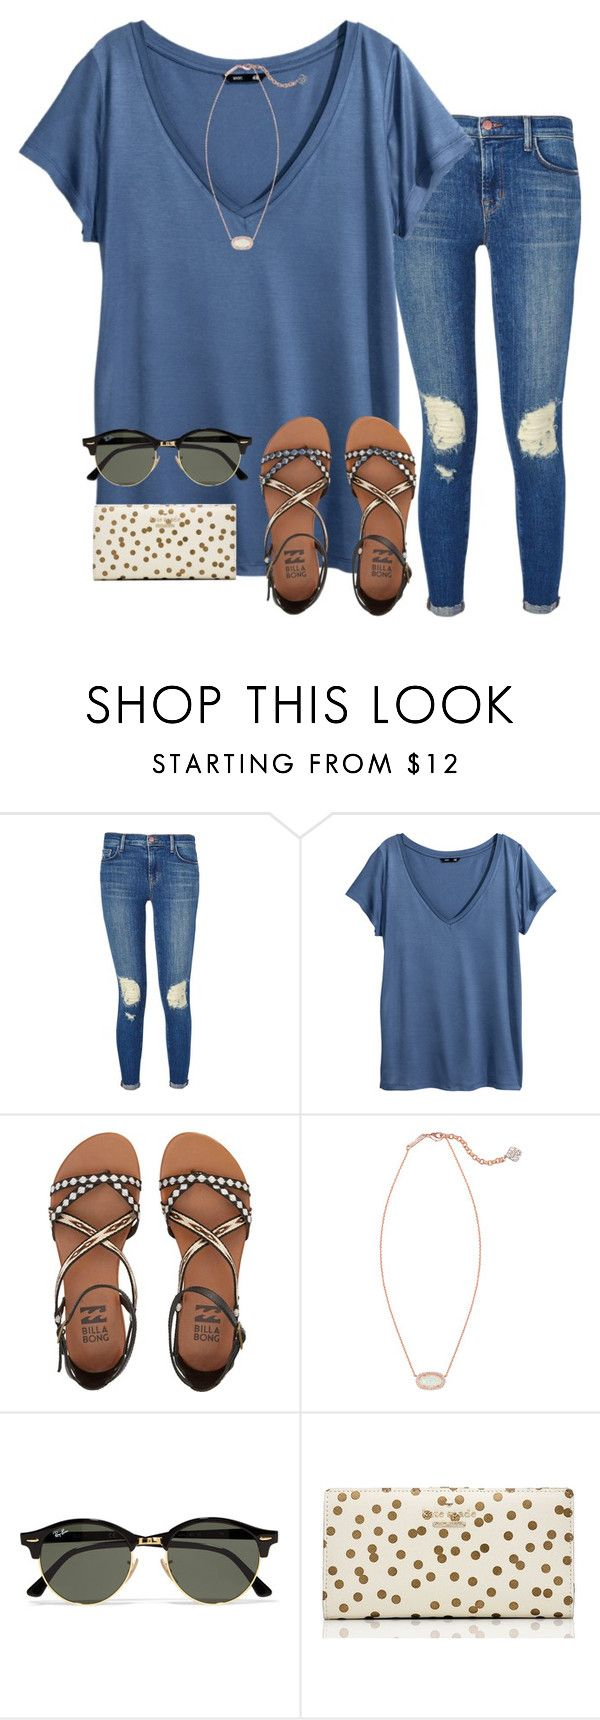 """""""idk what to title this"""" by serenag123 ❤ liked on Polyvore featuring J Brand, H&M, Billabong, Kendra Scott, Ray-Ban and Kate Spade"""